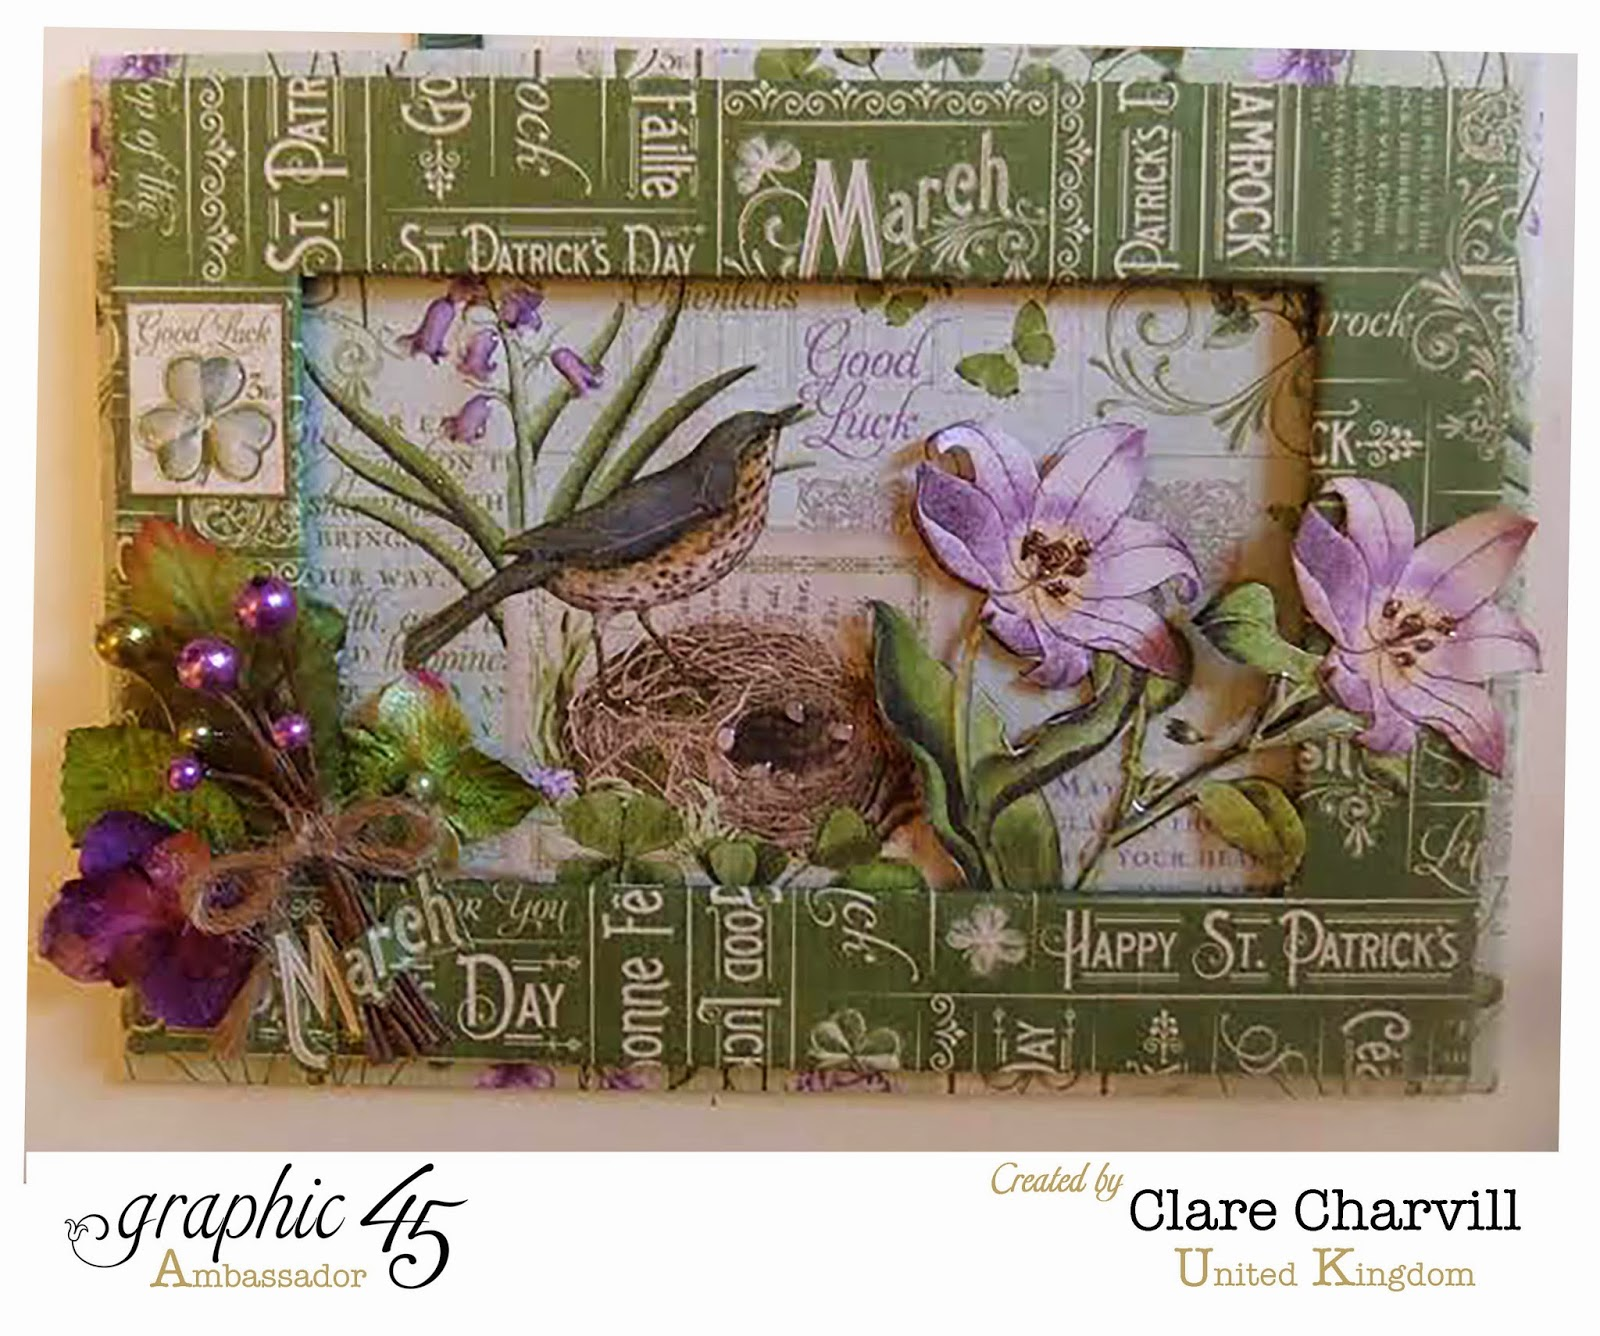 Time to Flourish Picture Frame by Clare Charvill for Jones Crafts Graphic 45